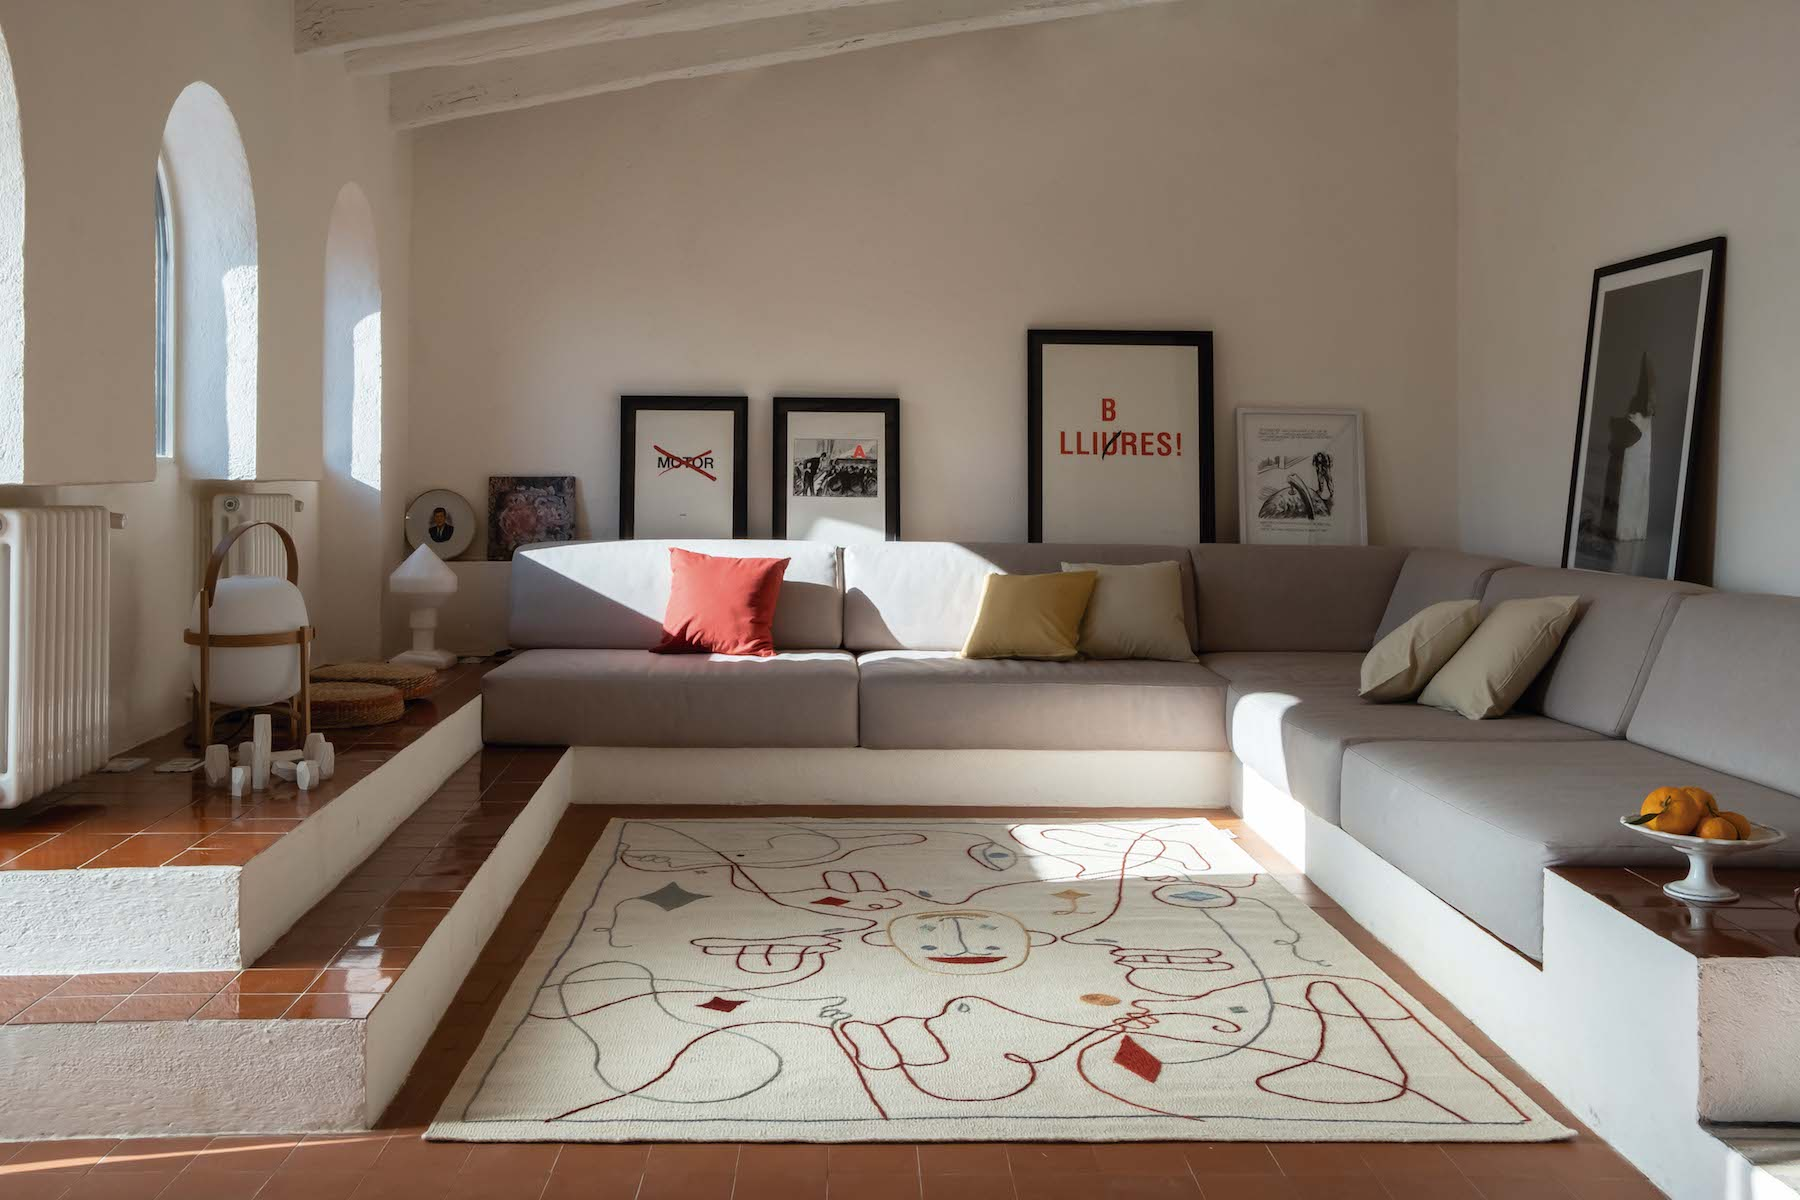 Cream colored rug with colorful lines sits in the center of a living room with gray sofa.